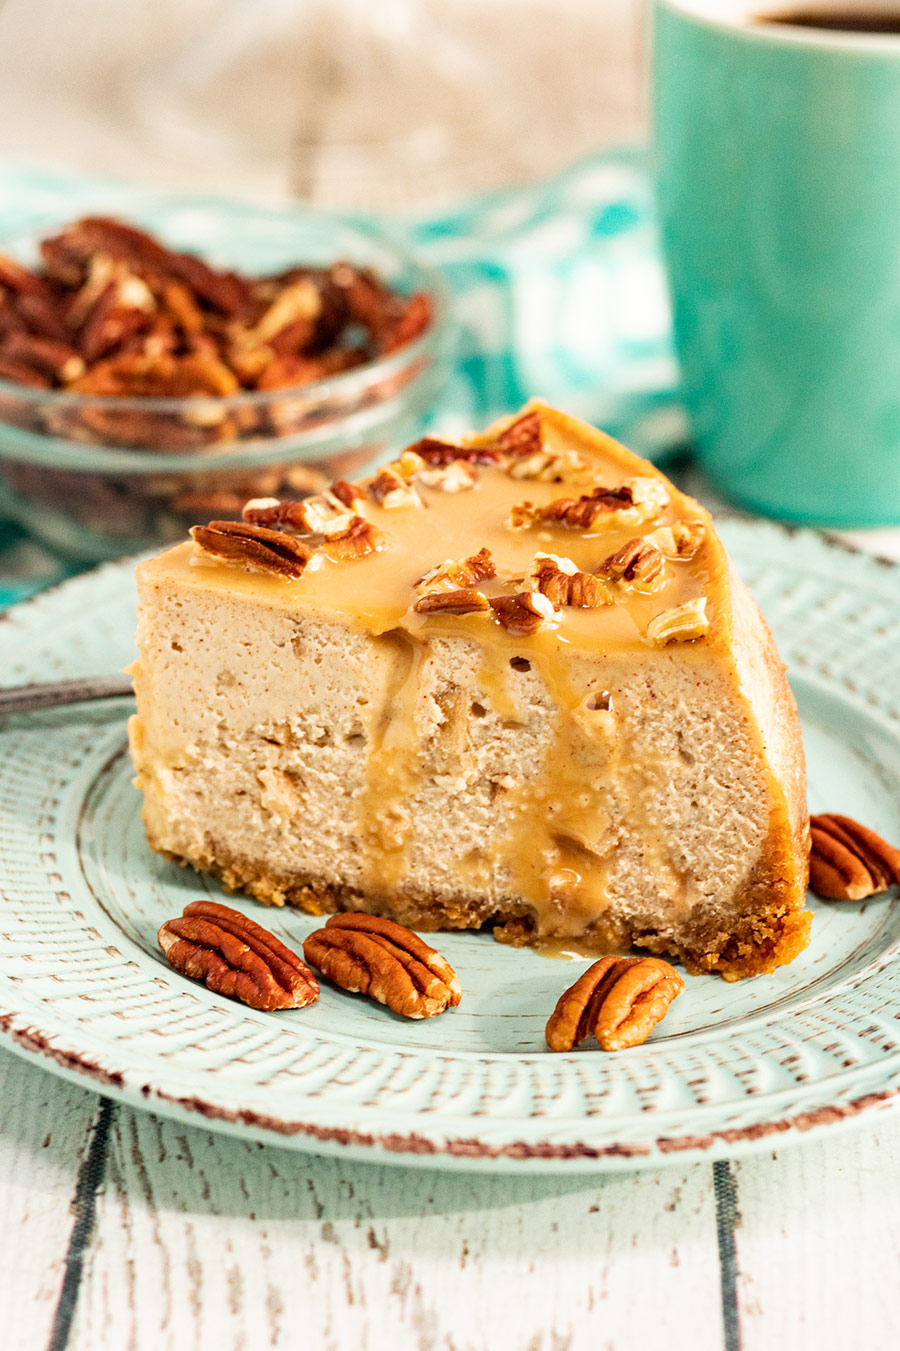 a slice of caramel apple cheesecake with pecans.